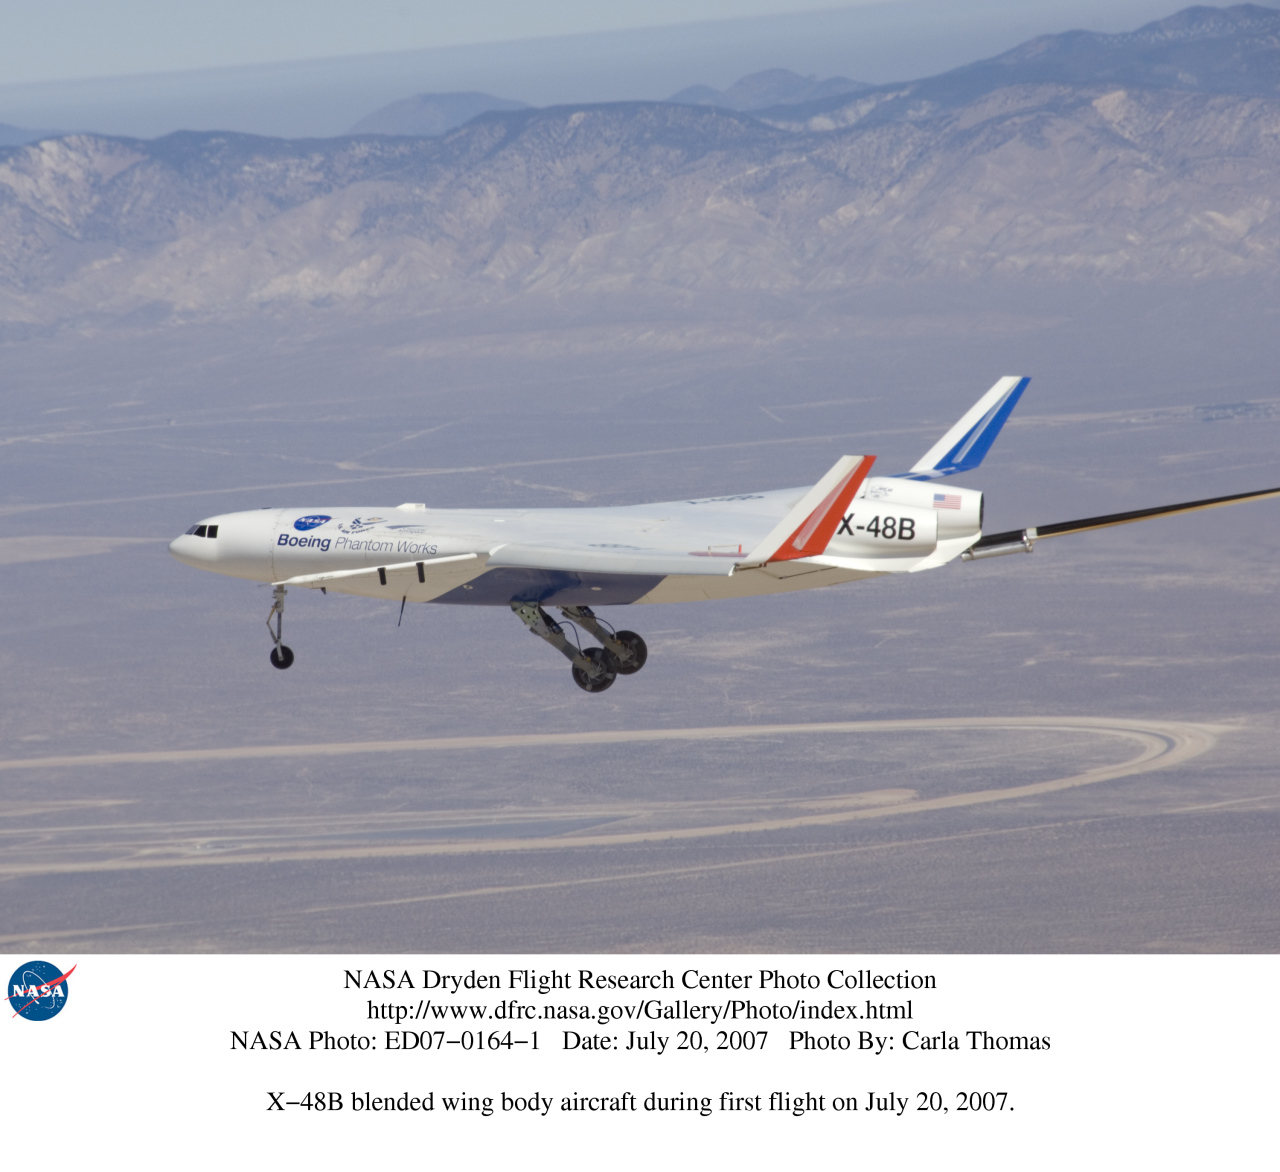 nasa x 48 drone aircraft - photo #11